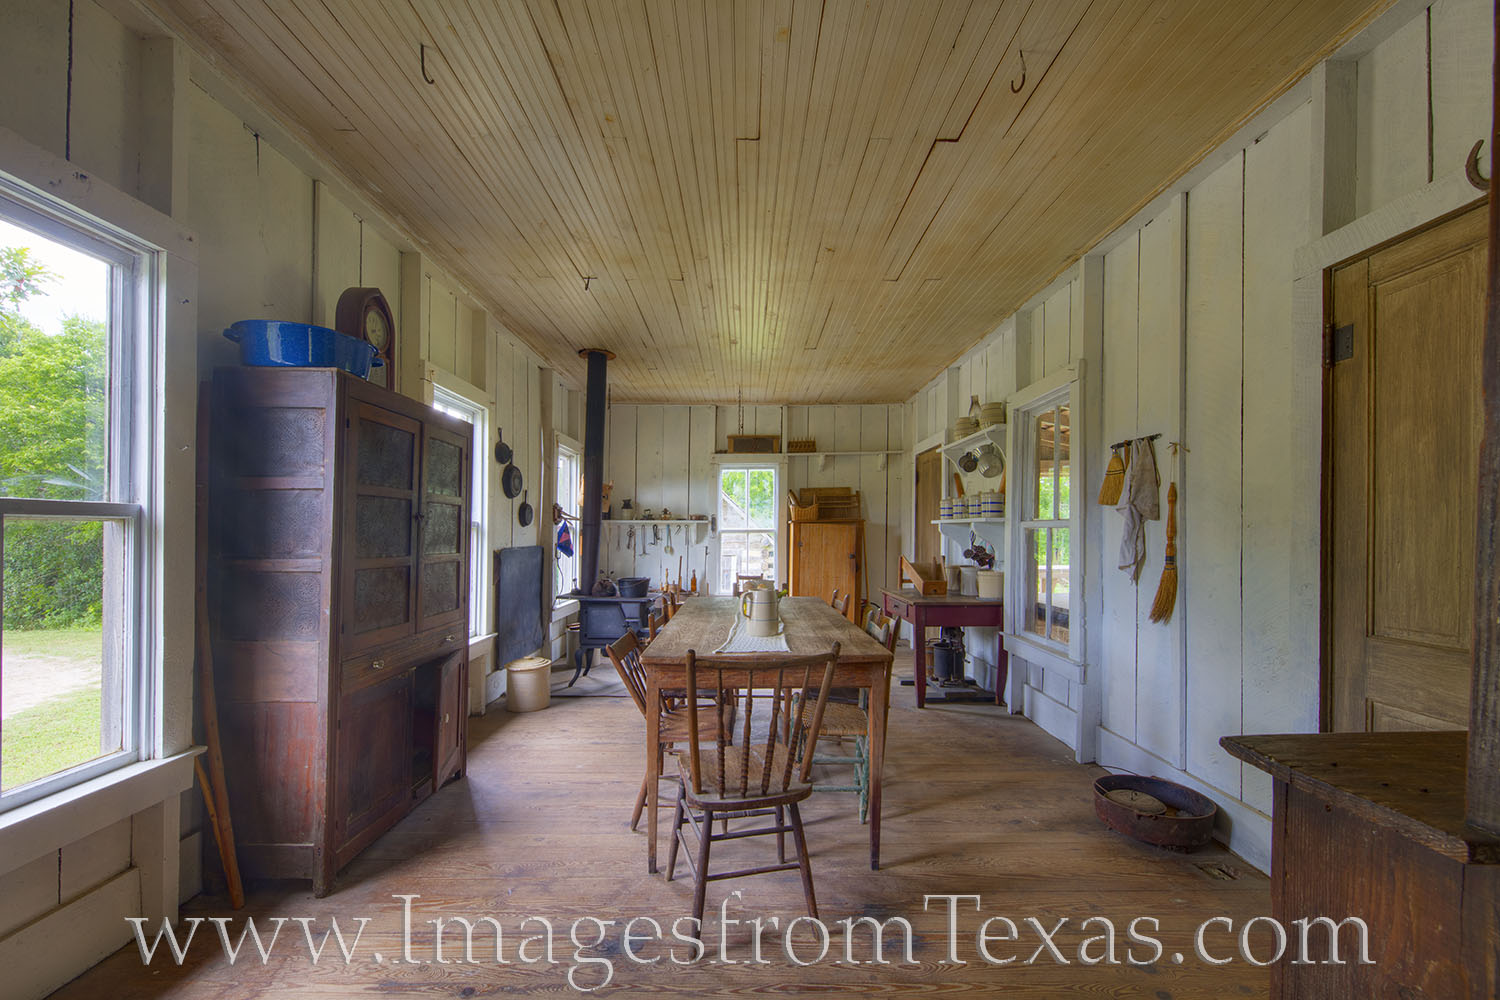 jourdan bachman, pioneer farms, history, austin, travel, touris, photo